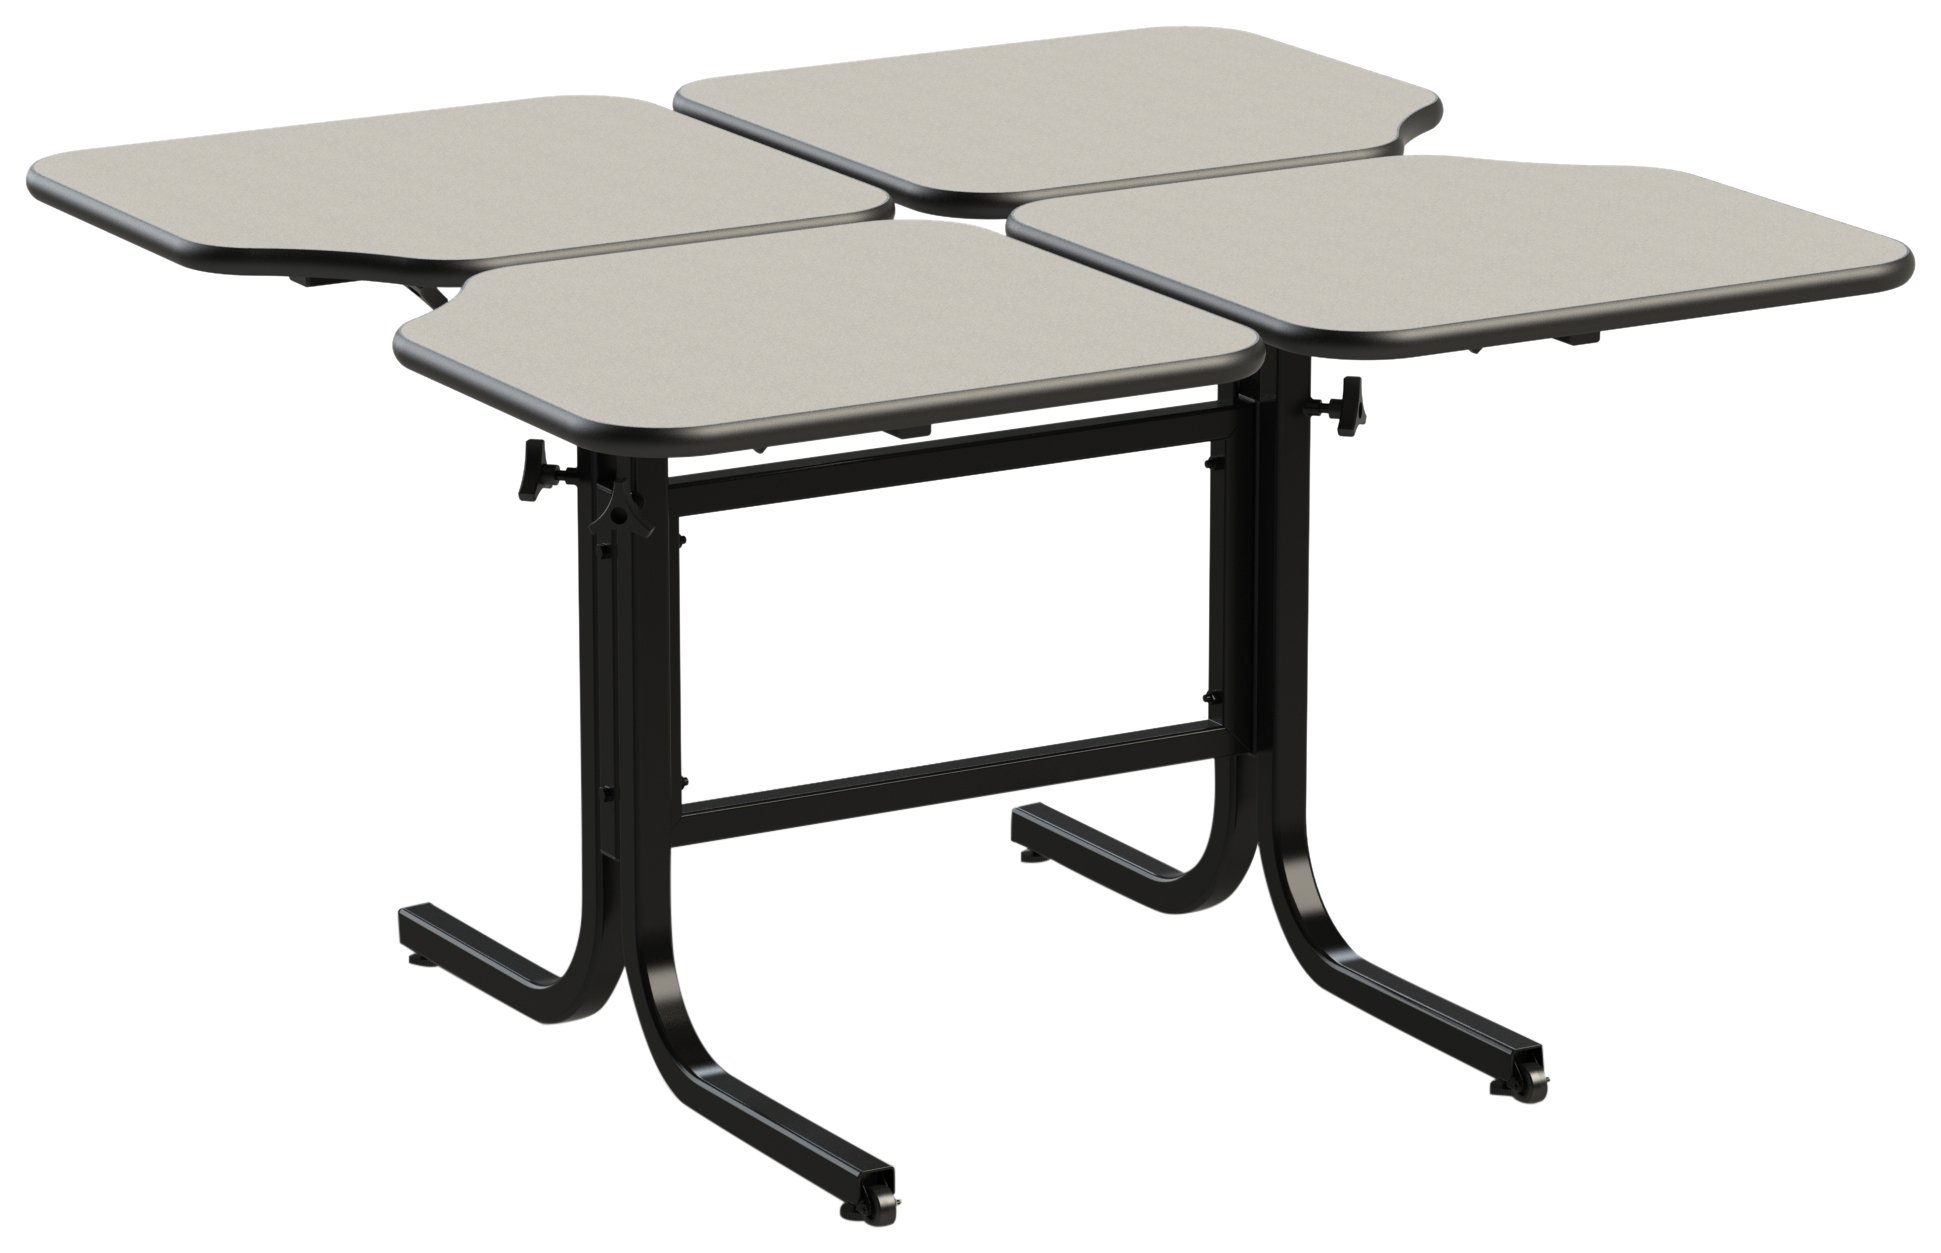 Wheel chair height adjustable table (4 person) double pedistal